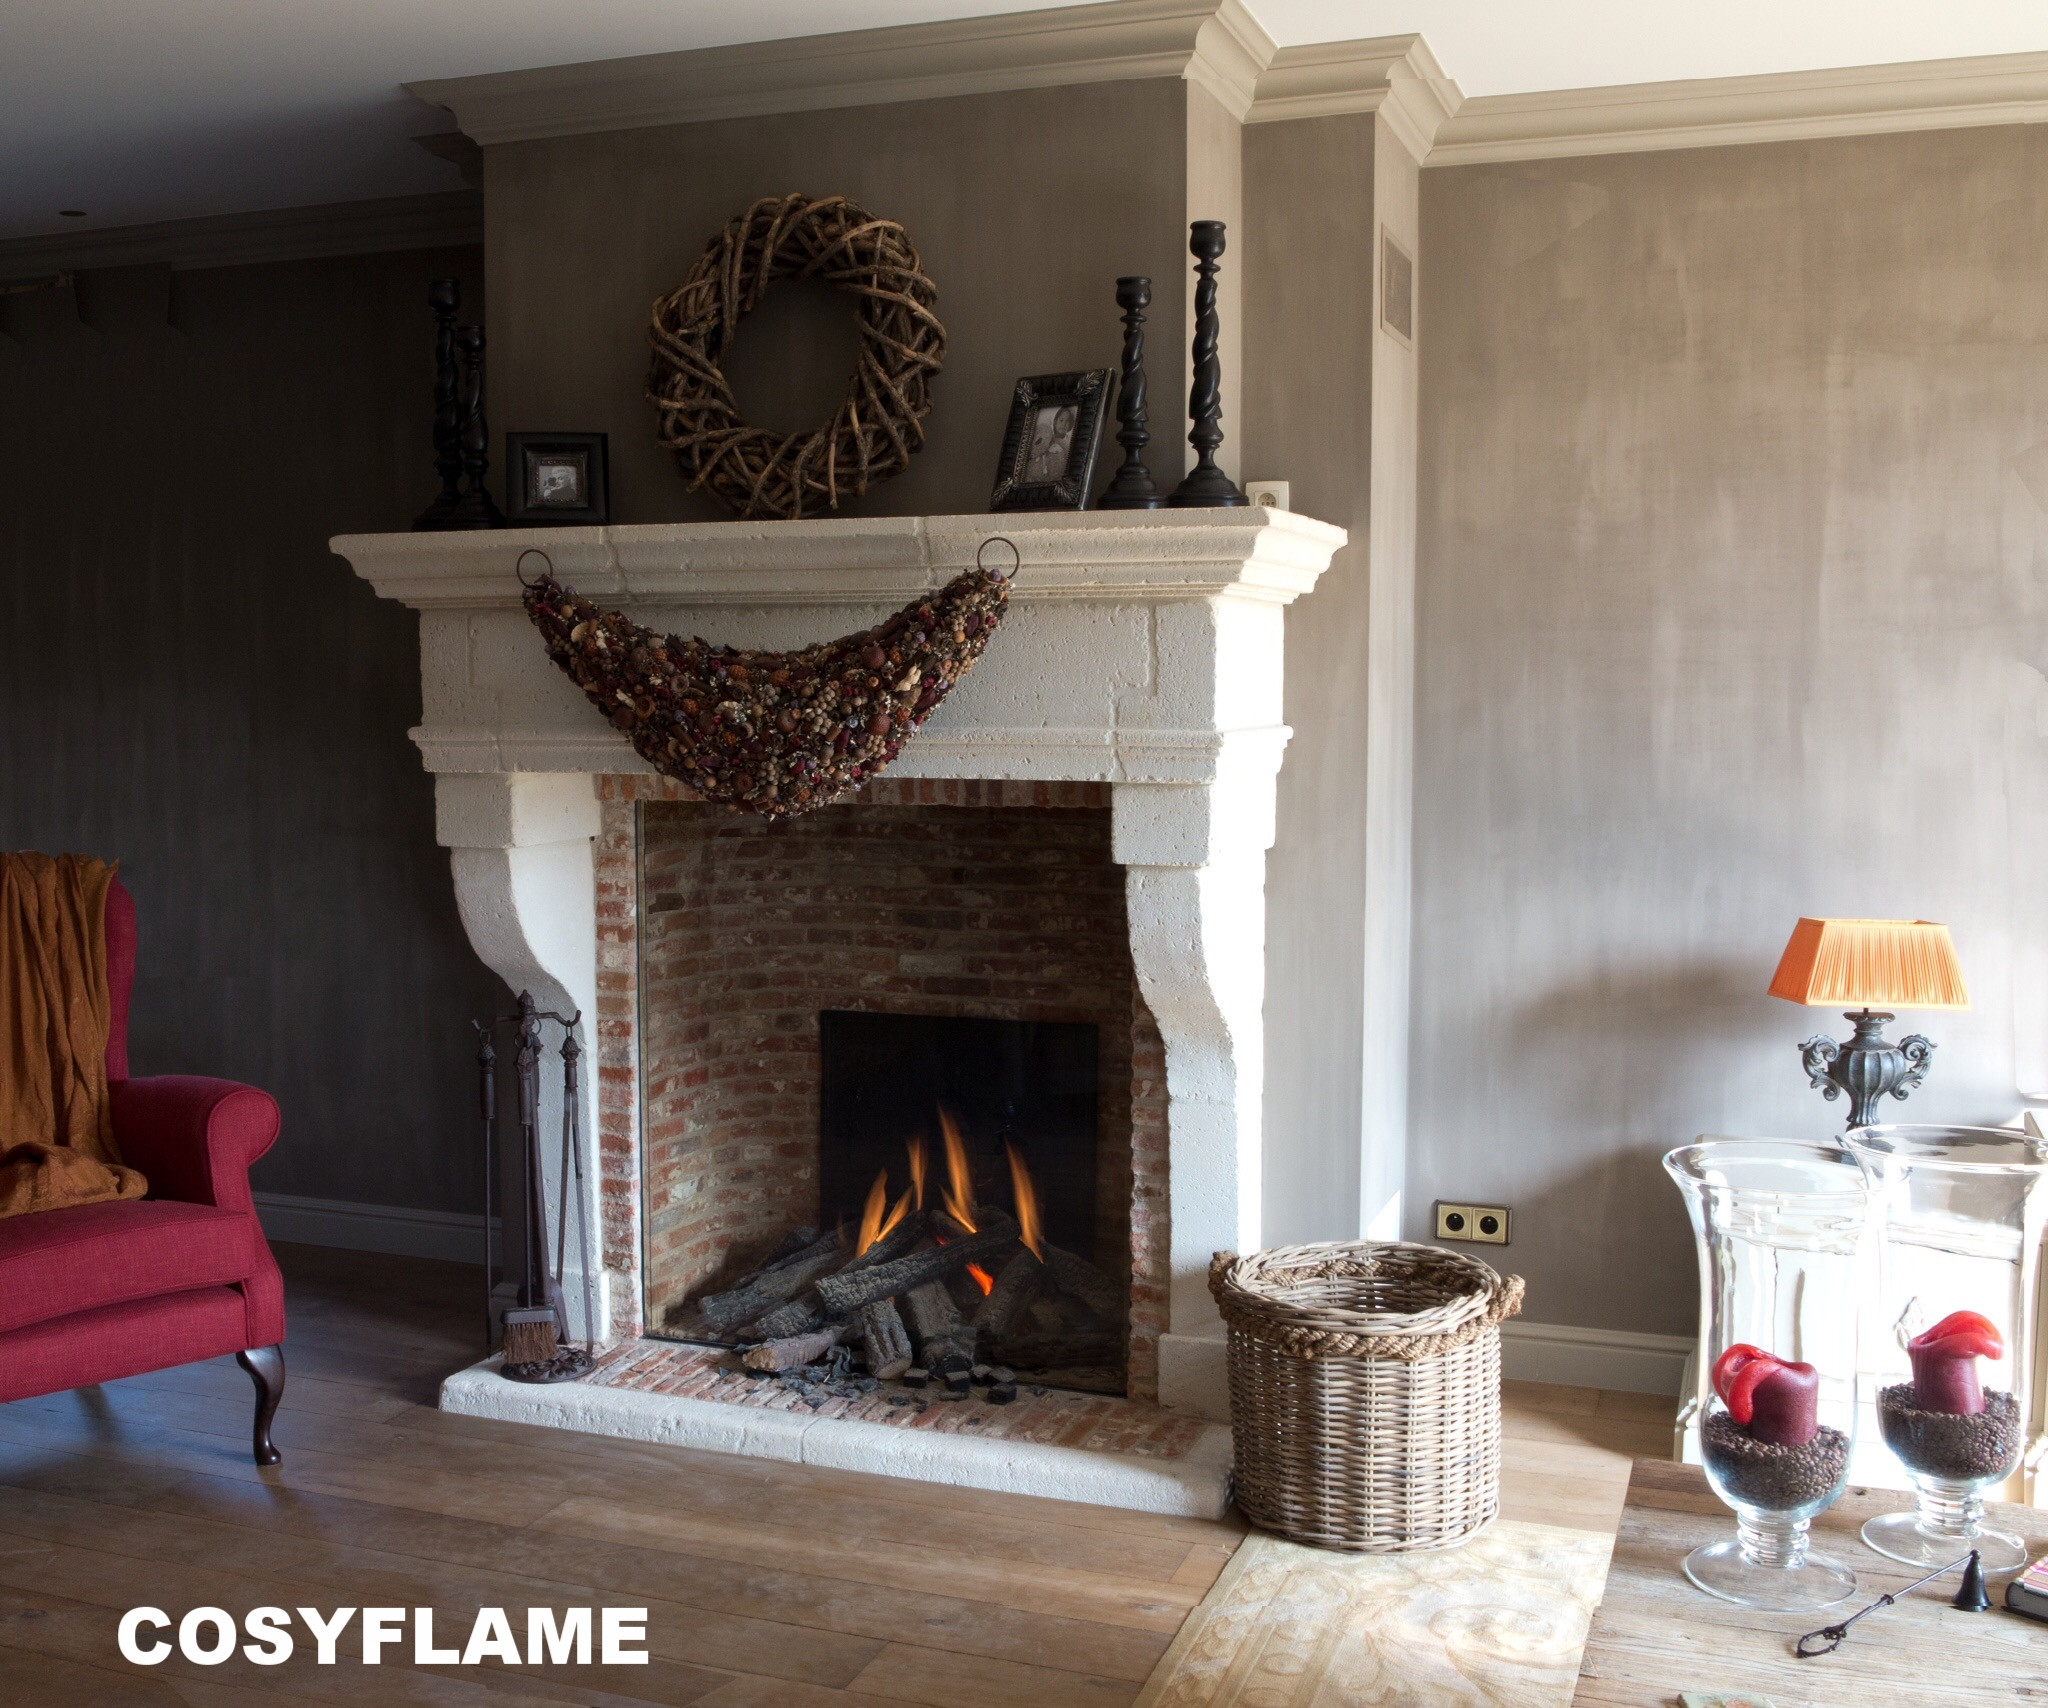 Cosyflame-Louis-XIII-file-44